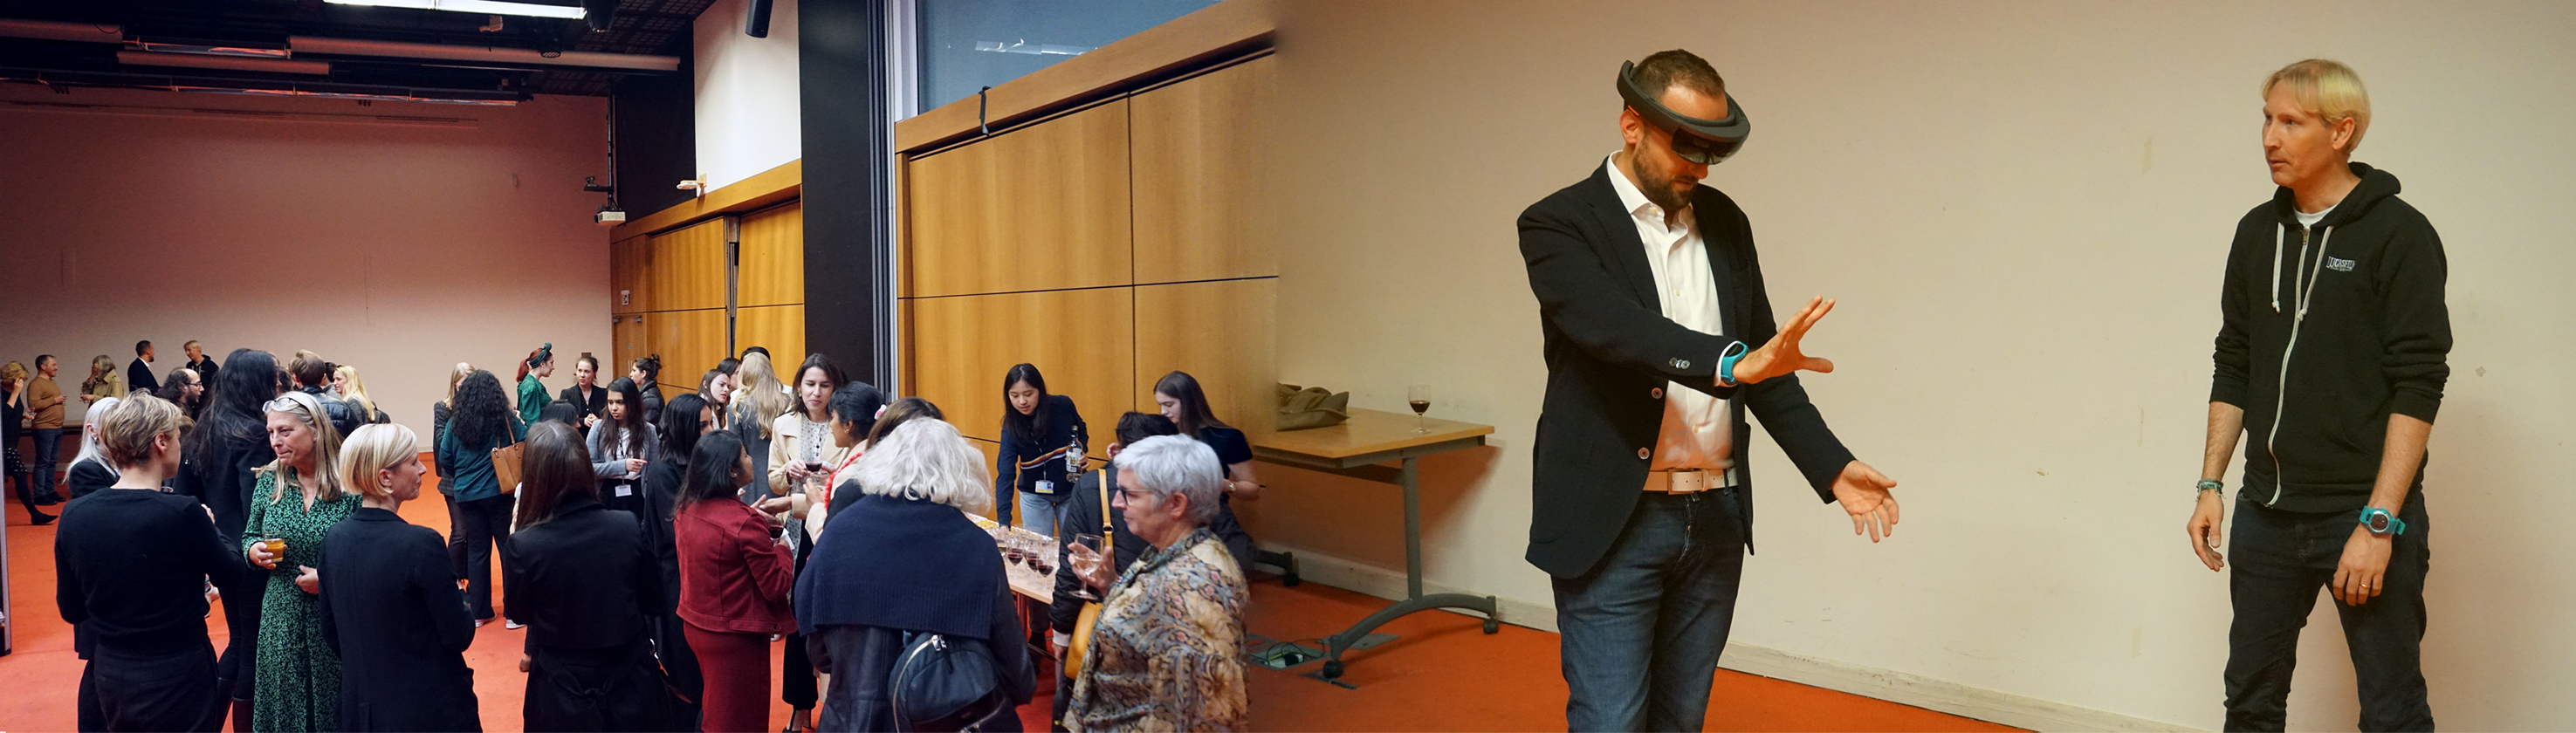 Image of people networking and with matthew drinkwater using virtual reality